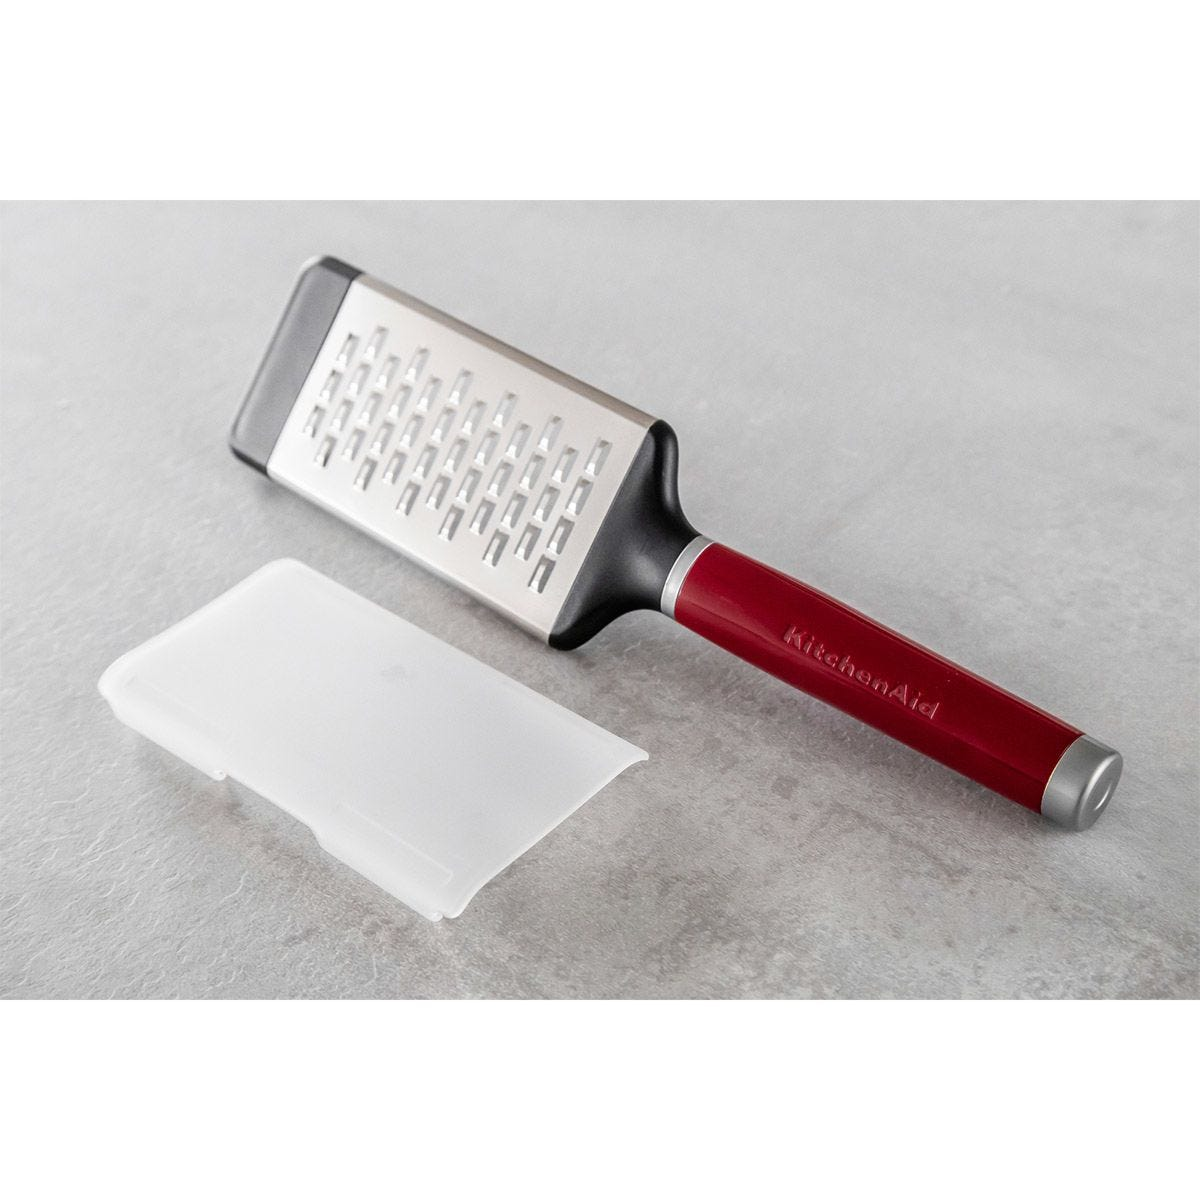 KitchenAid Stainless Steel Medium Etched Grater - Red